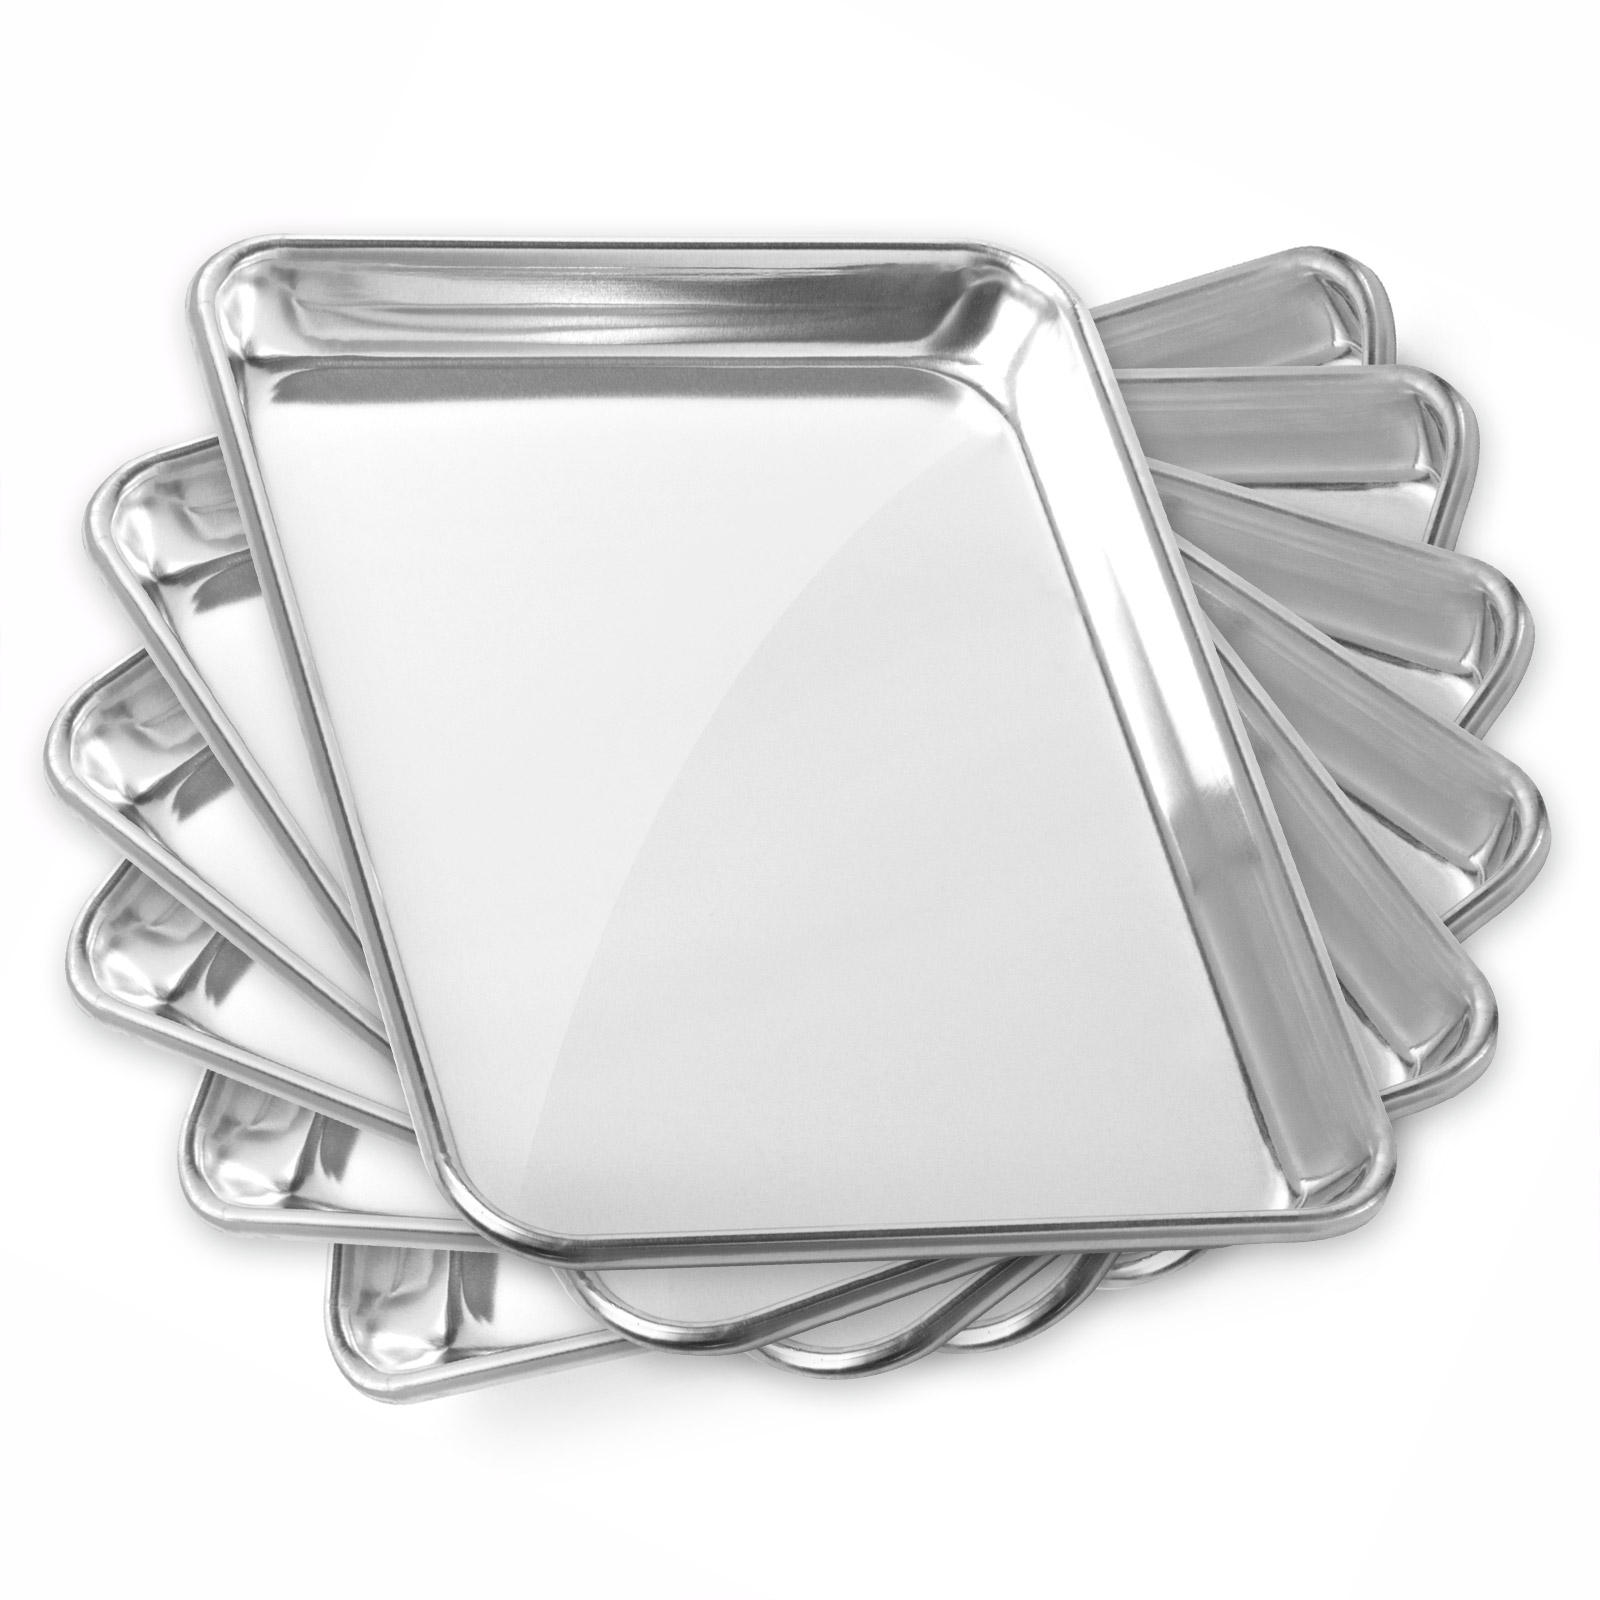 Gridmann Commercial Grade Aluminium Cookie Sheet Baking Tray  - Asssorted Sizes - 6 Pans